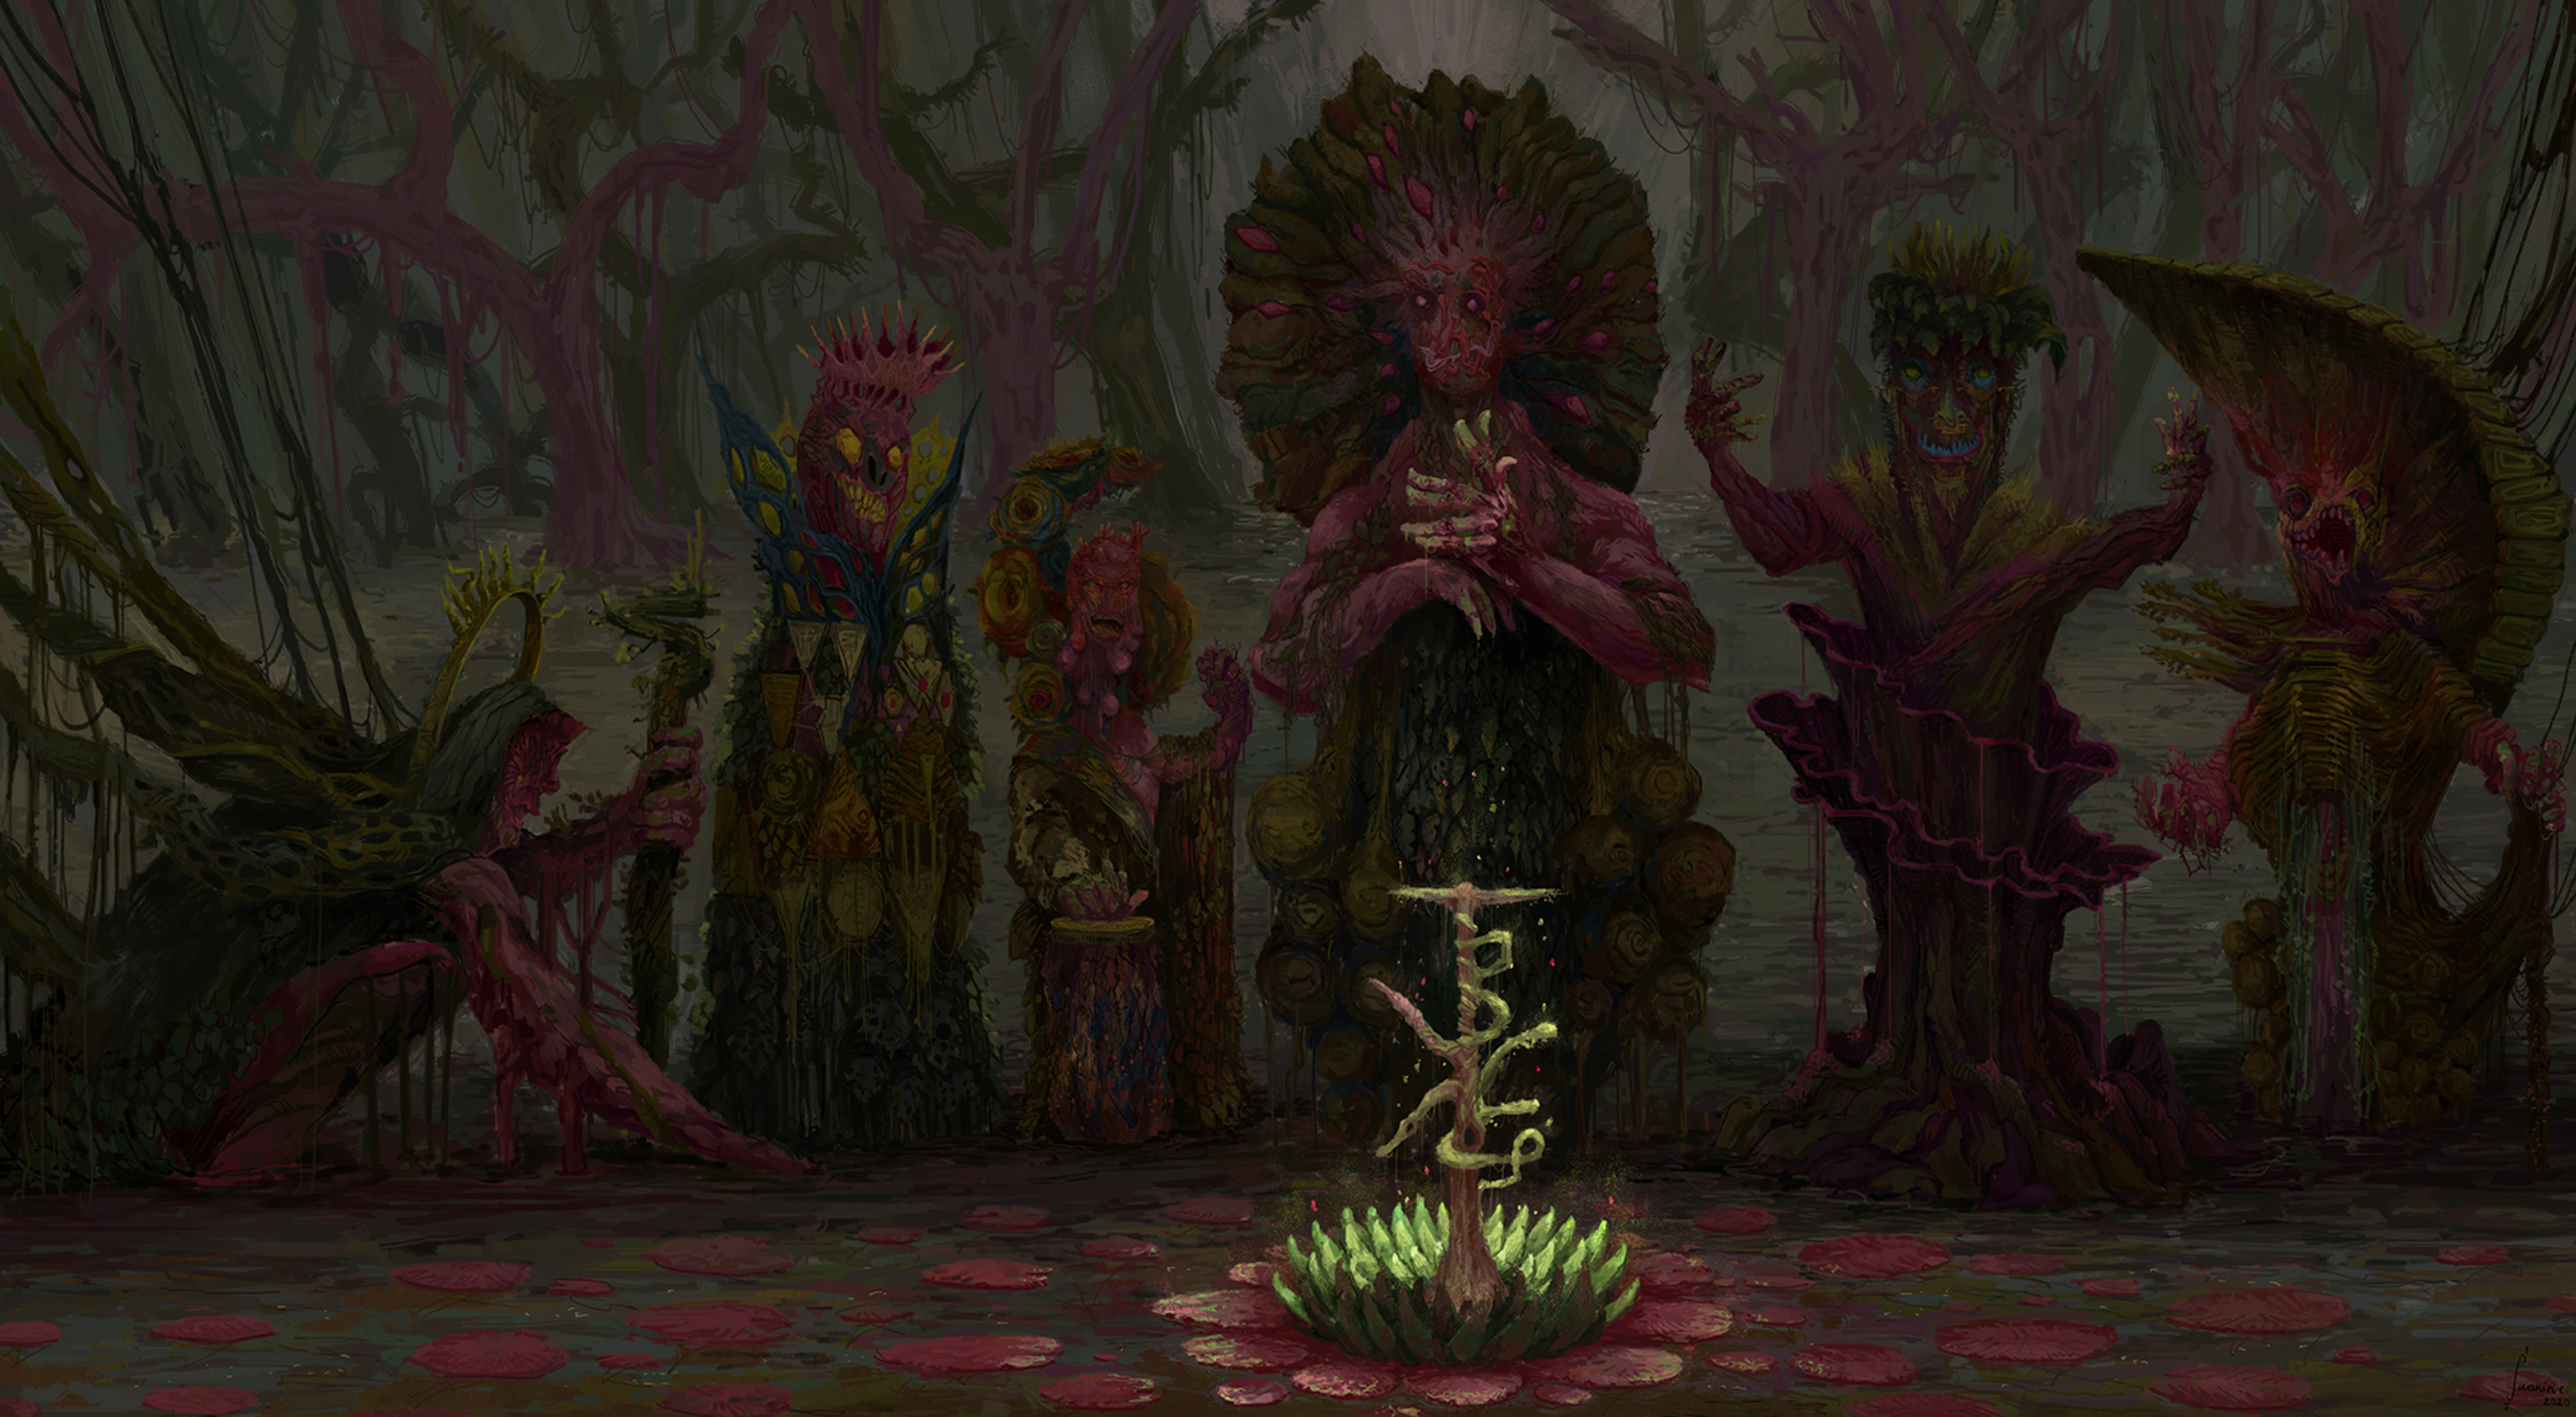 The Six Tyrant Kings of the Bramble for Dysparea -  A Shattered World Artwork by Jonathan  Fernandes Juanieve